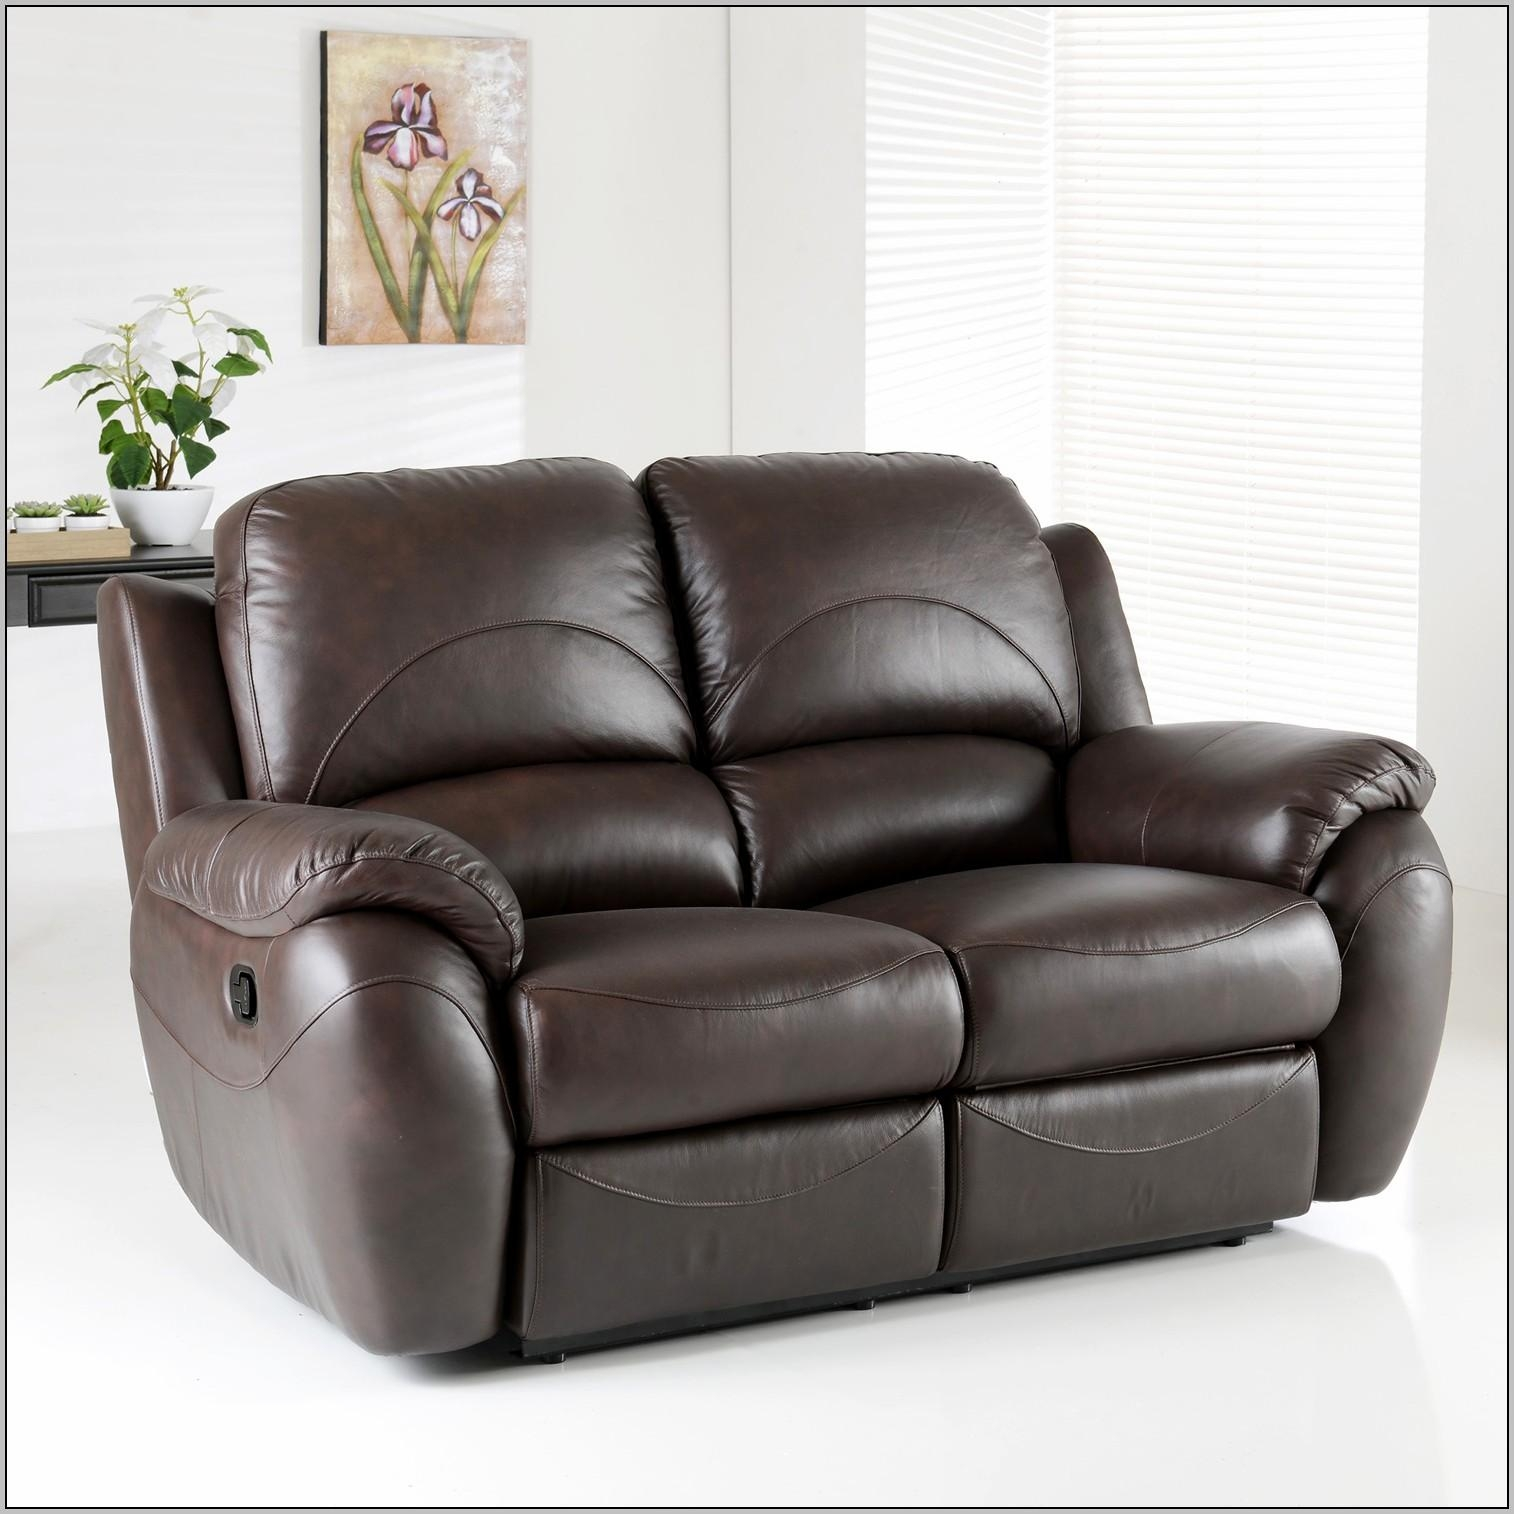 Chinaklsk In 2 Seat Recliner Sofas (View 5 of 20)